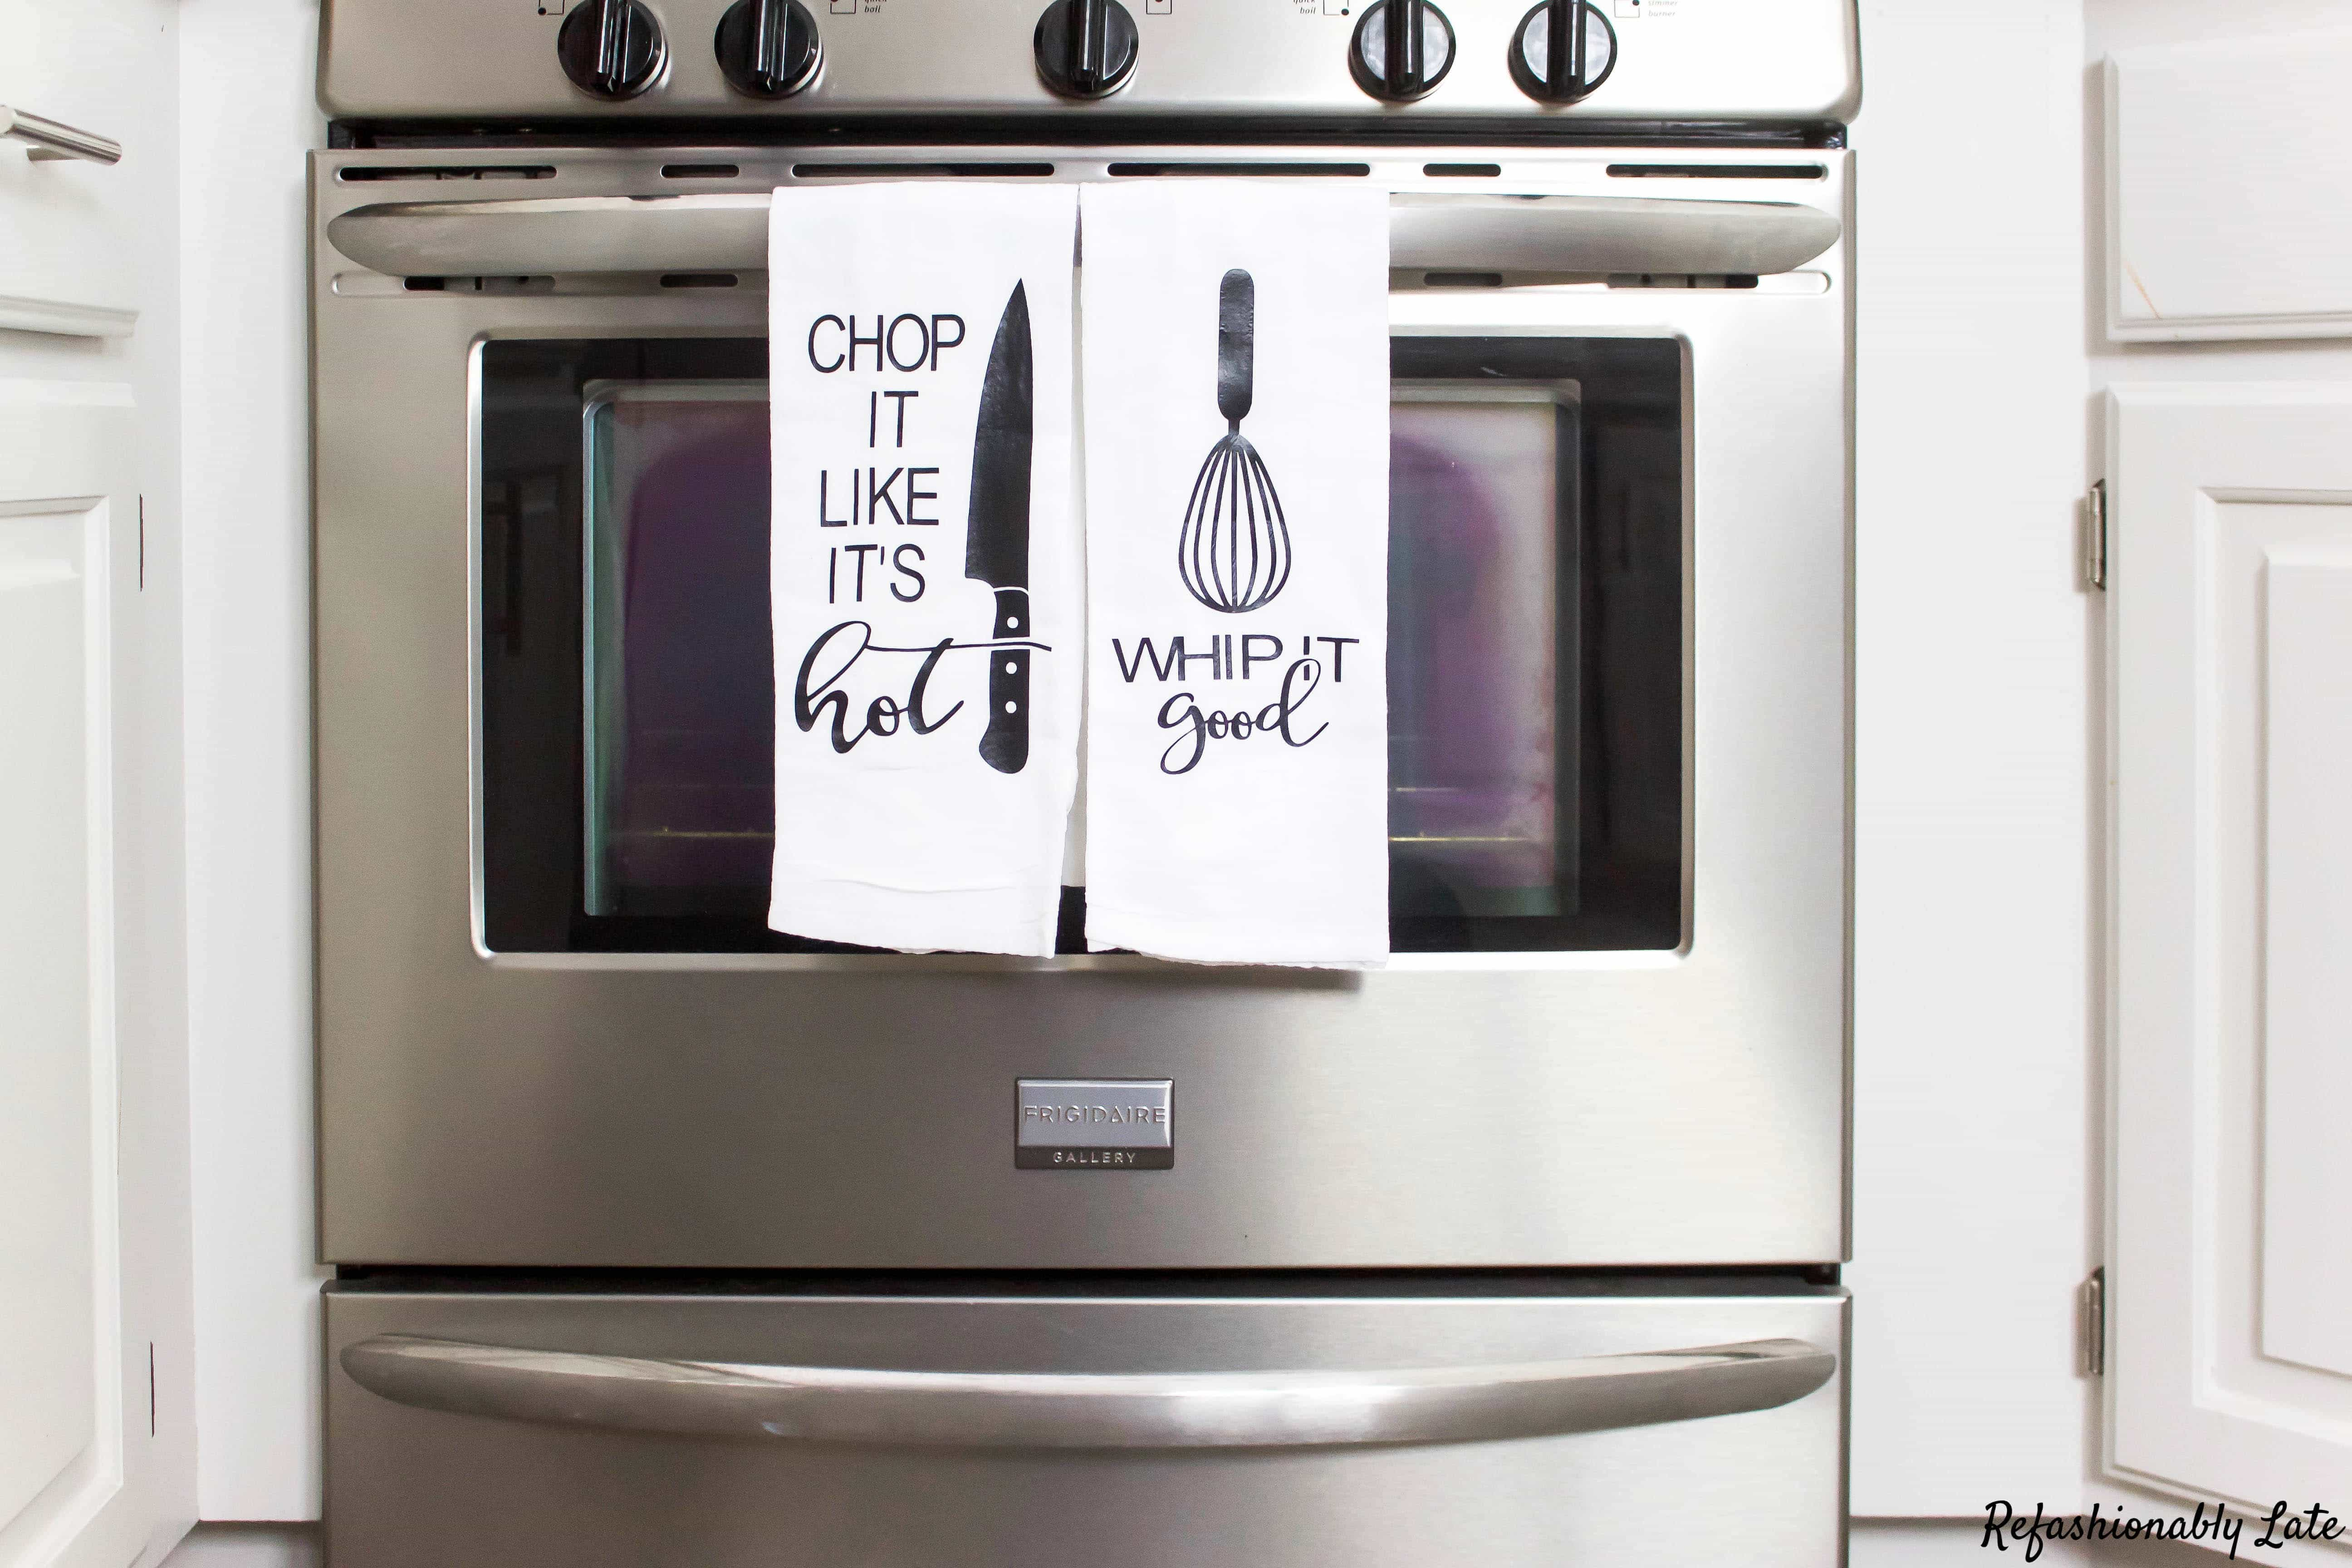 Flour Sack Towels Displayed on a Squeeky Clean Oven - www.refashionablylate.com